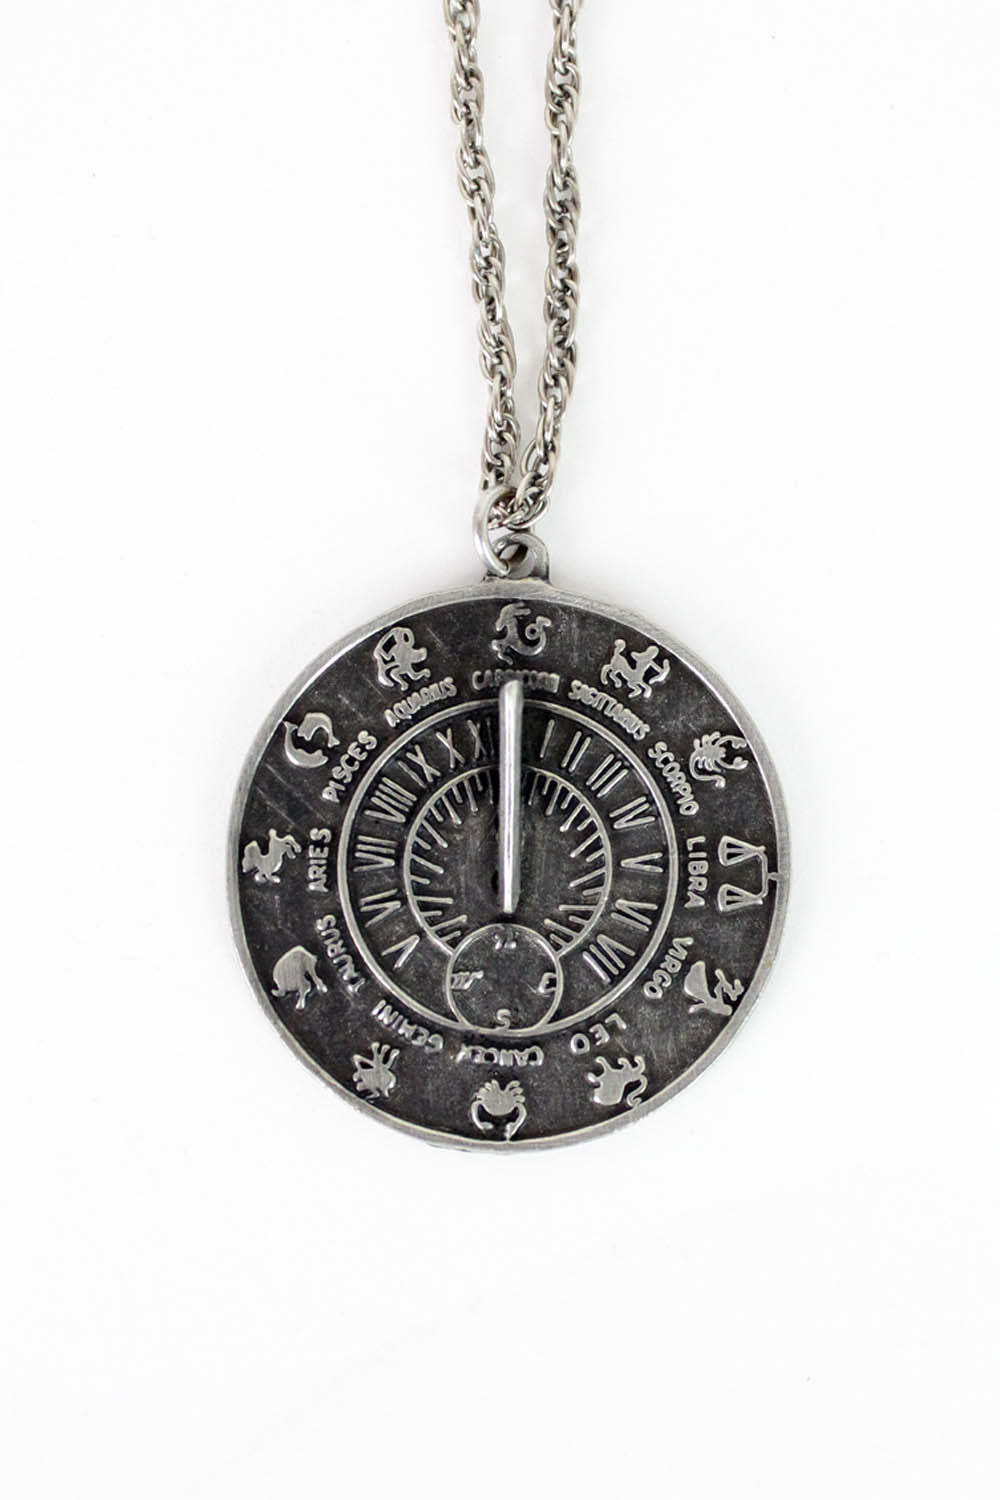 Astrological Pendant Necklace